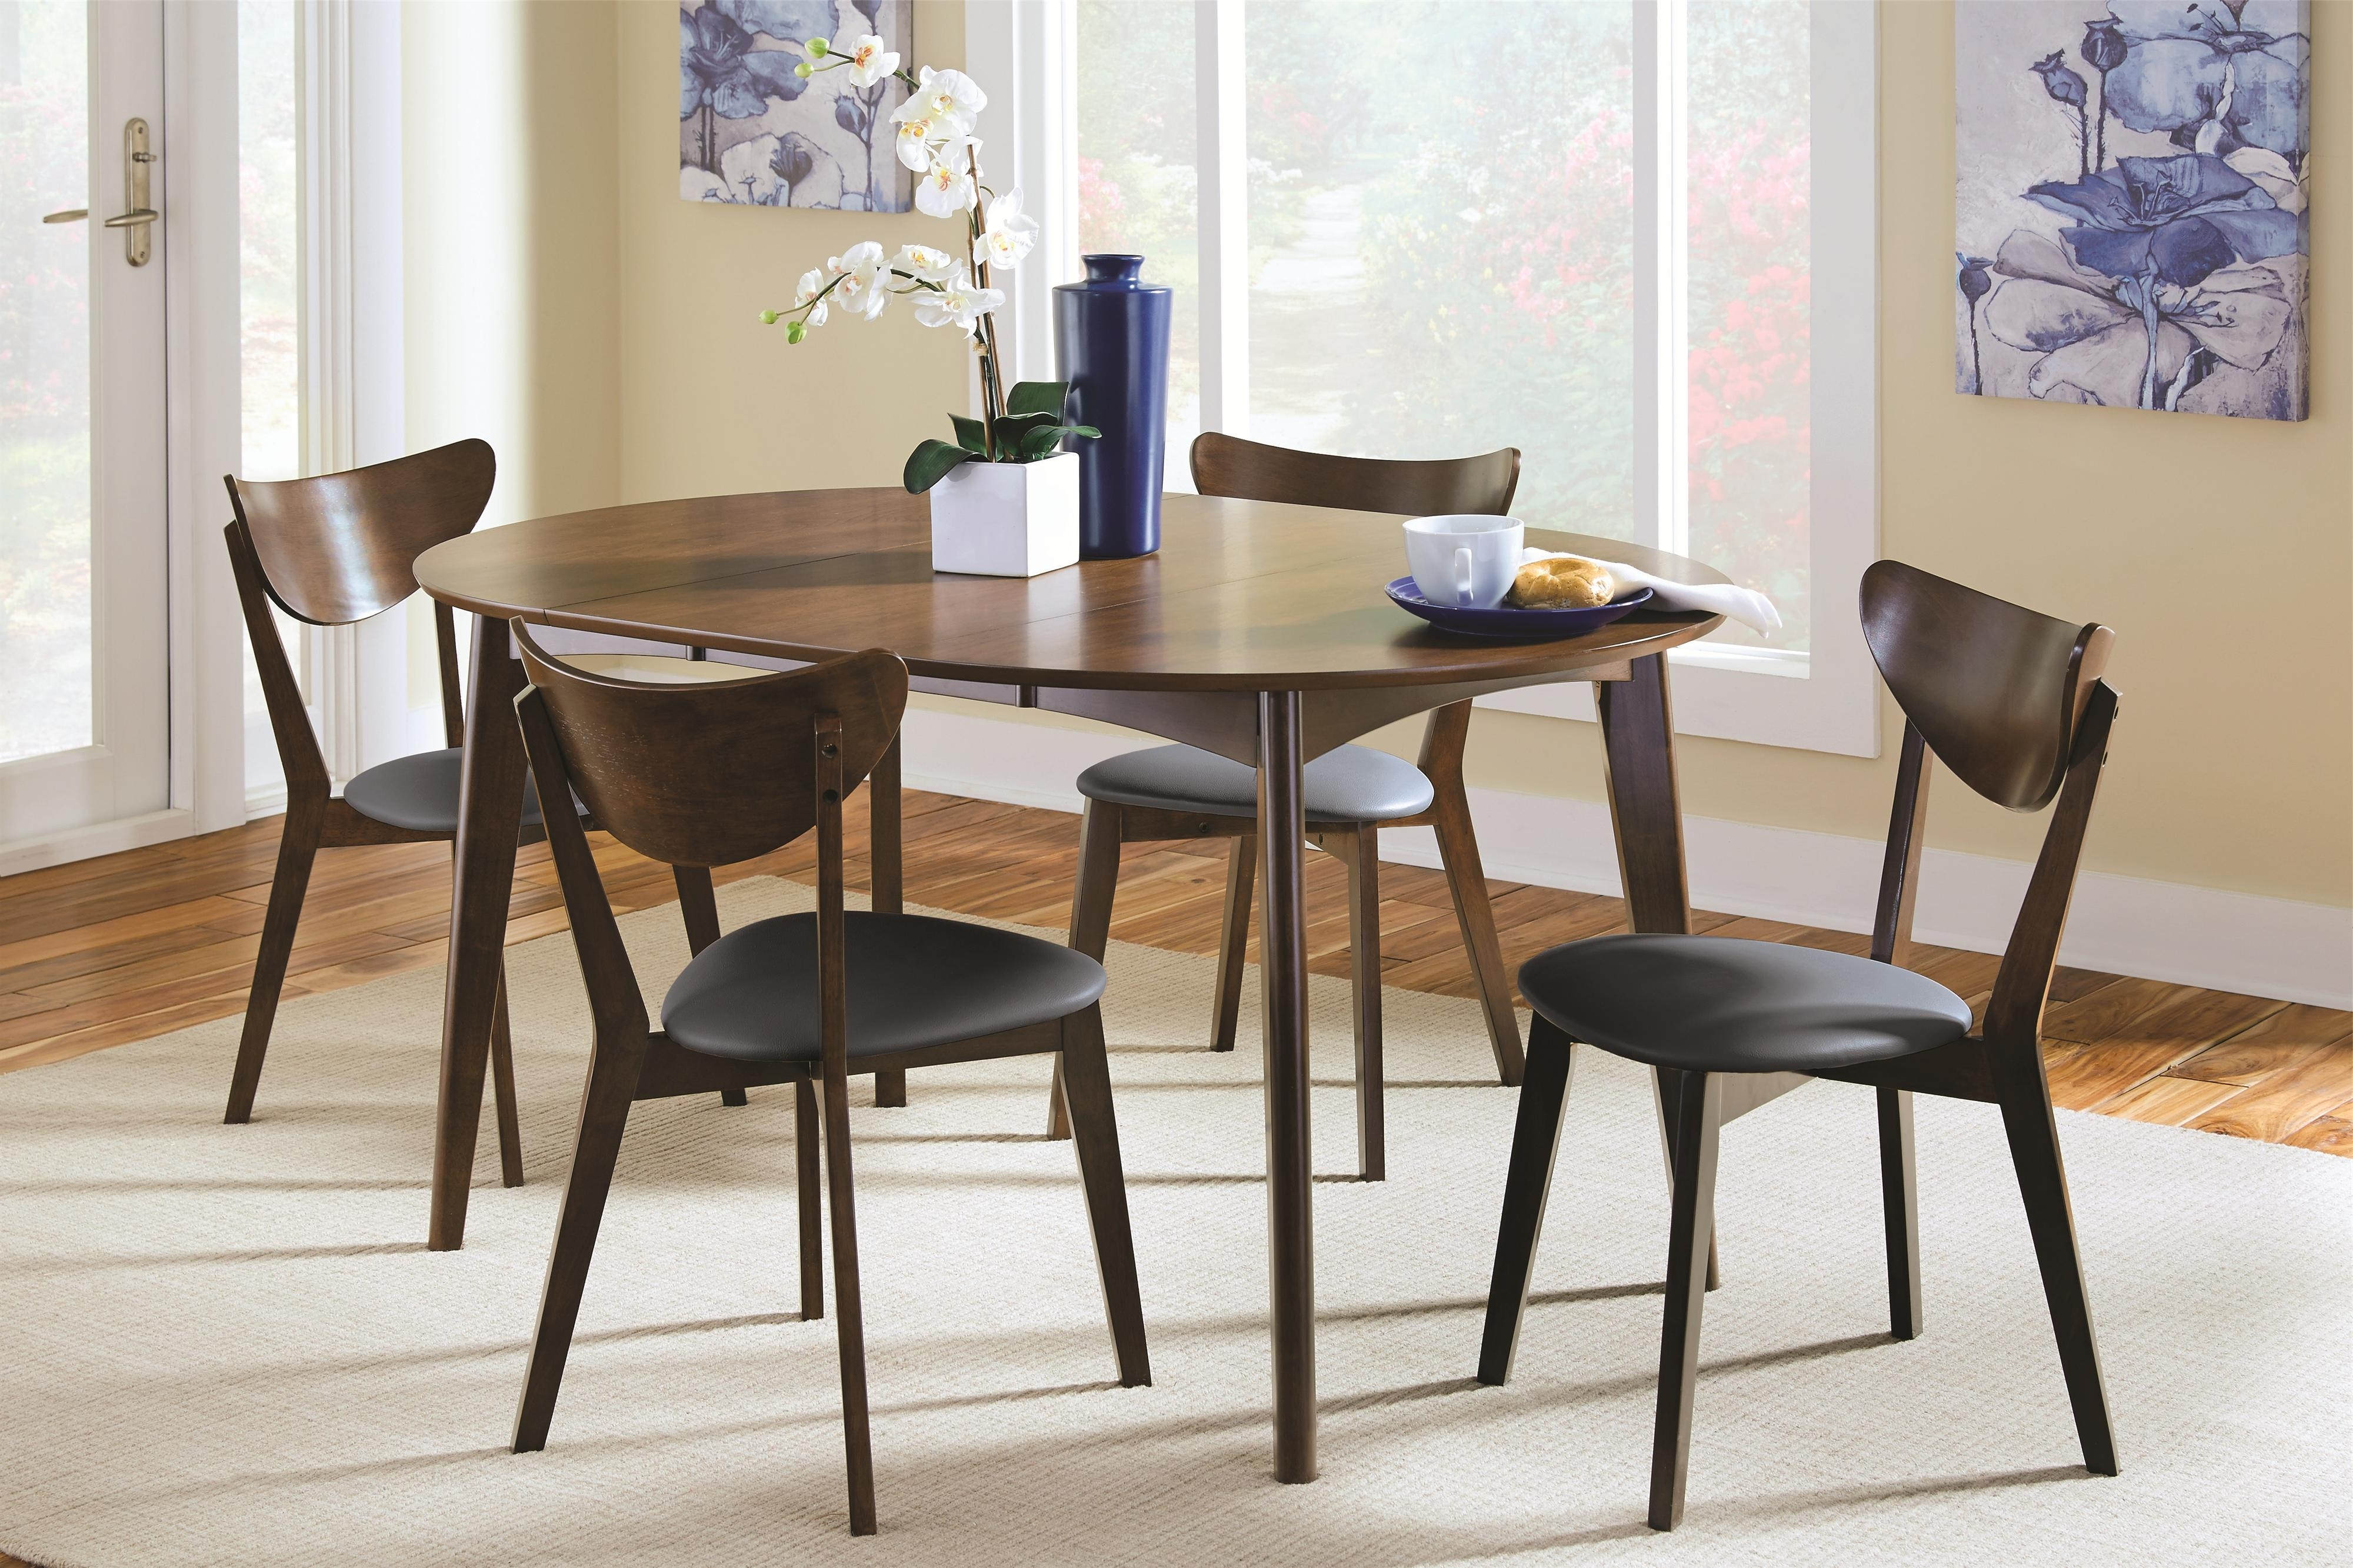 Modern Dining Table And Chairs Pertaining To Well Known Coaster Malone Mid Century Modern 5 Piece Solid Wood Dining Set (View 16 of 25)